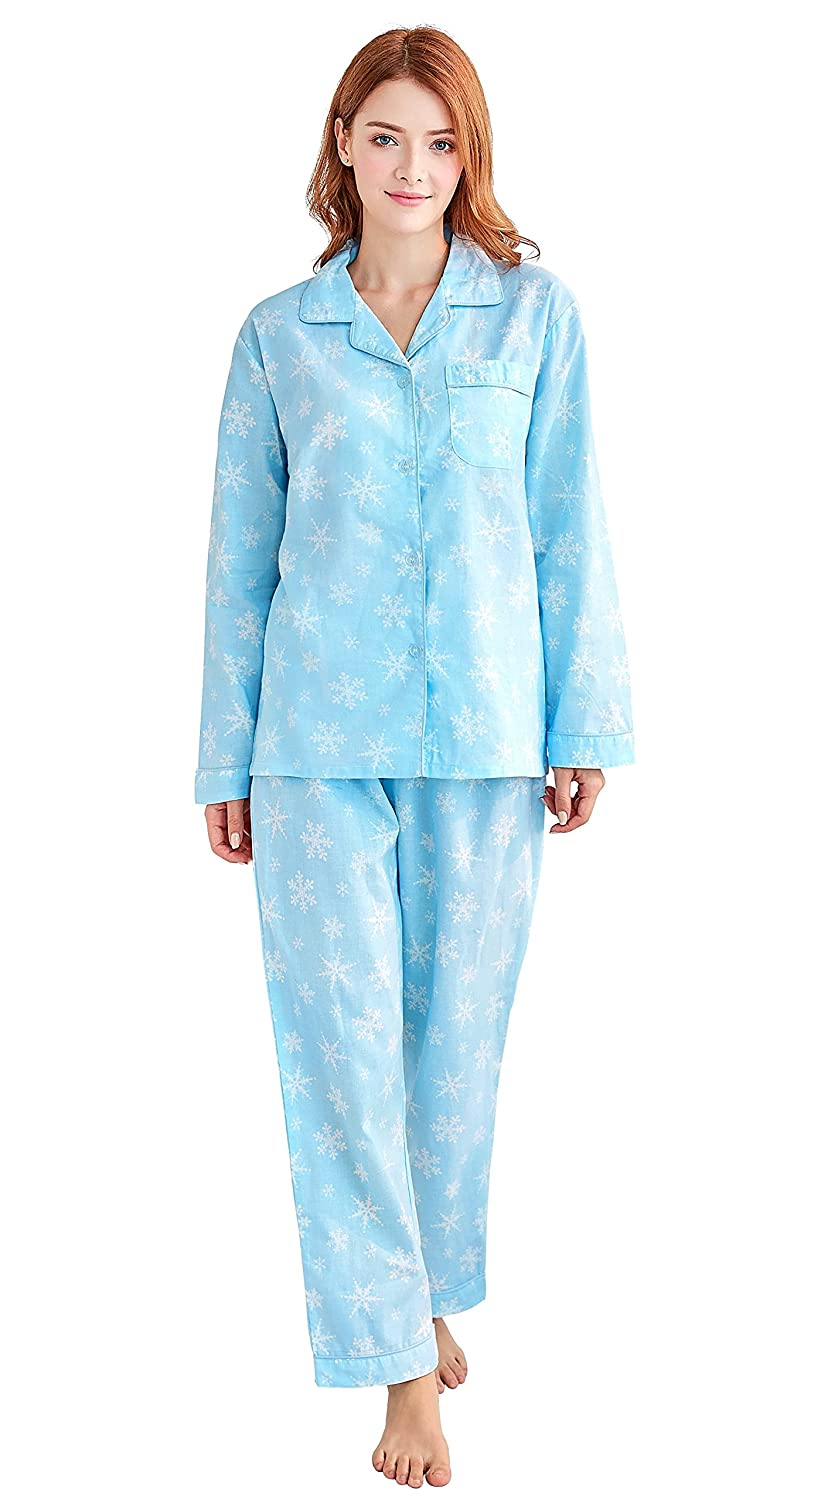 Women s 100% Cotton Pajamas ac98696fb